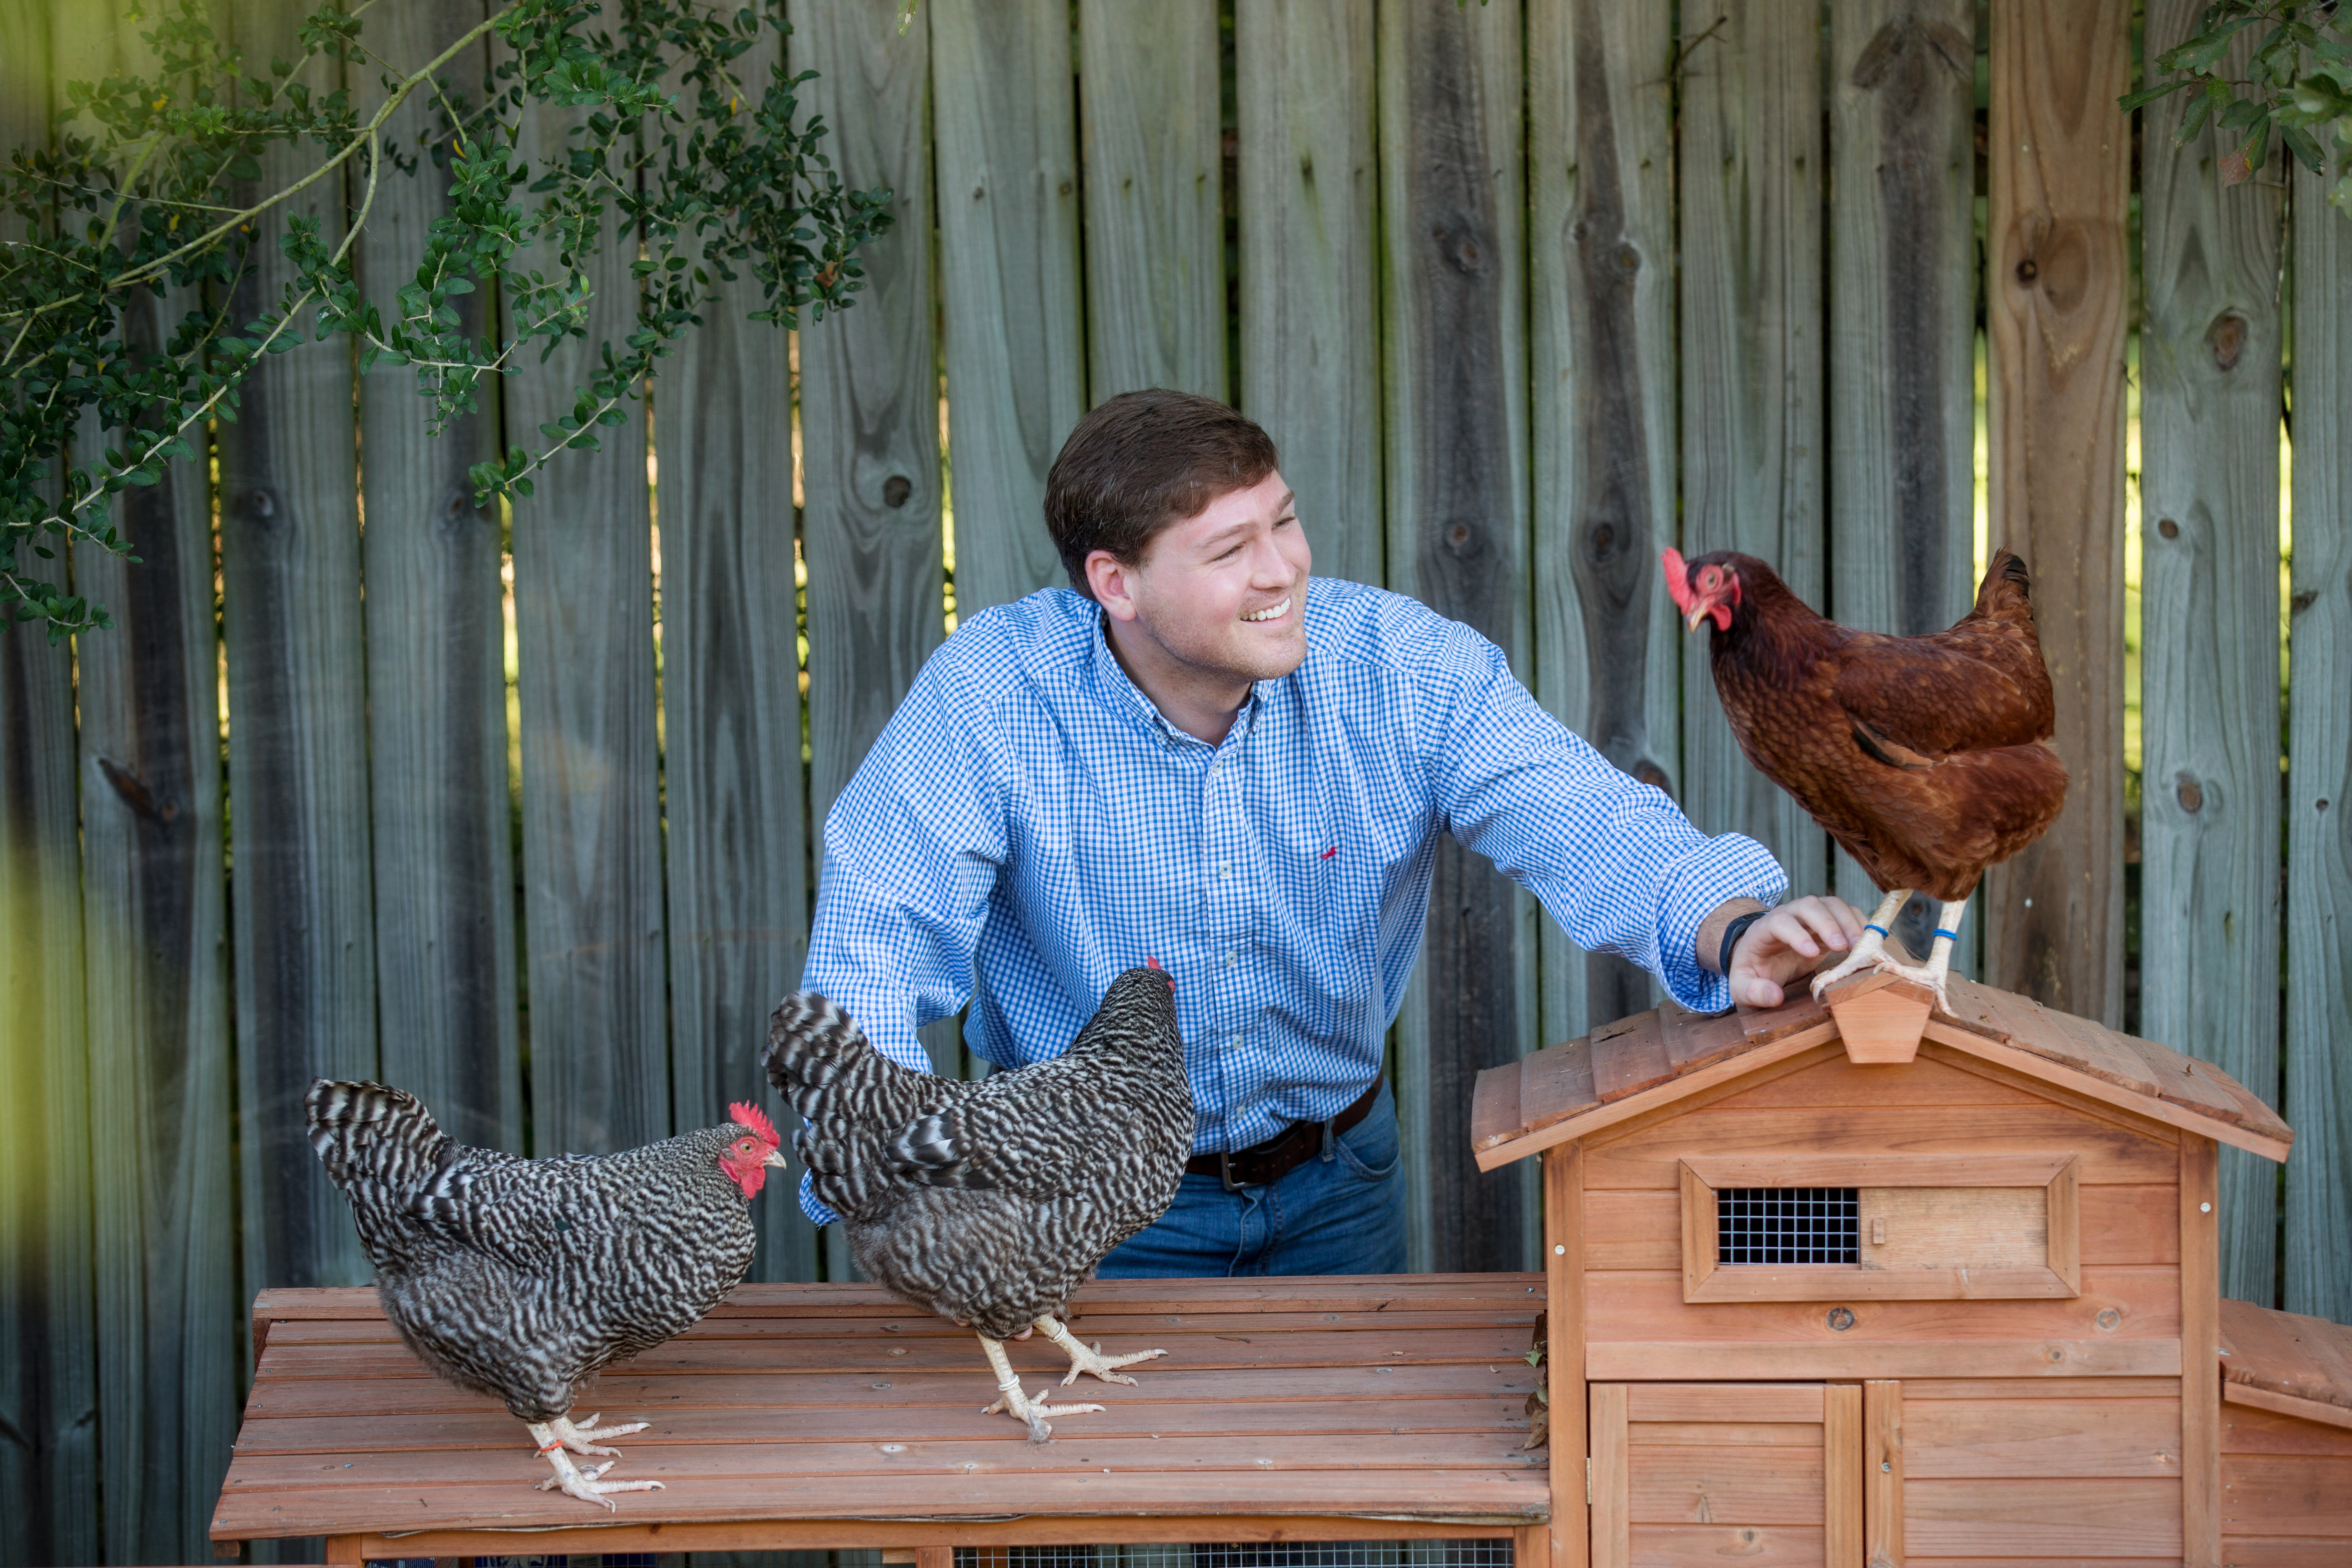 The surprisingly approachable hobby of raising chickens and